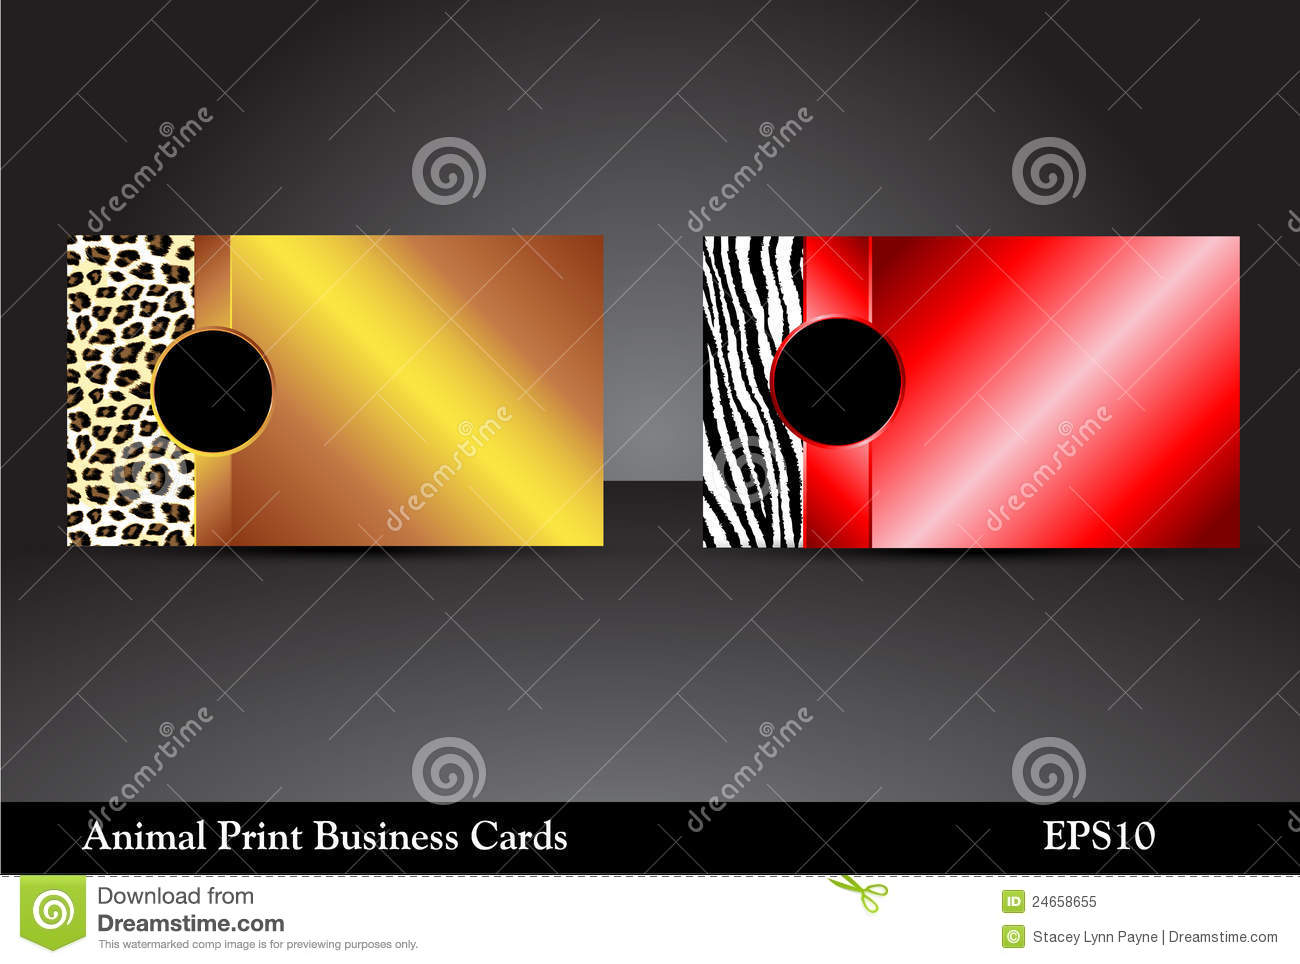 Animal print business cards raster version stock vector download animal print business cards raster version stock vector illustration of elegant reflective reheart Image collections